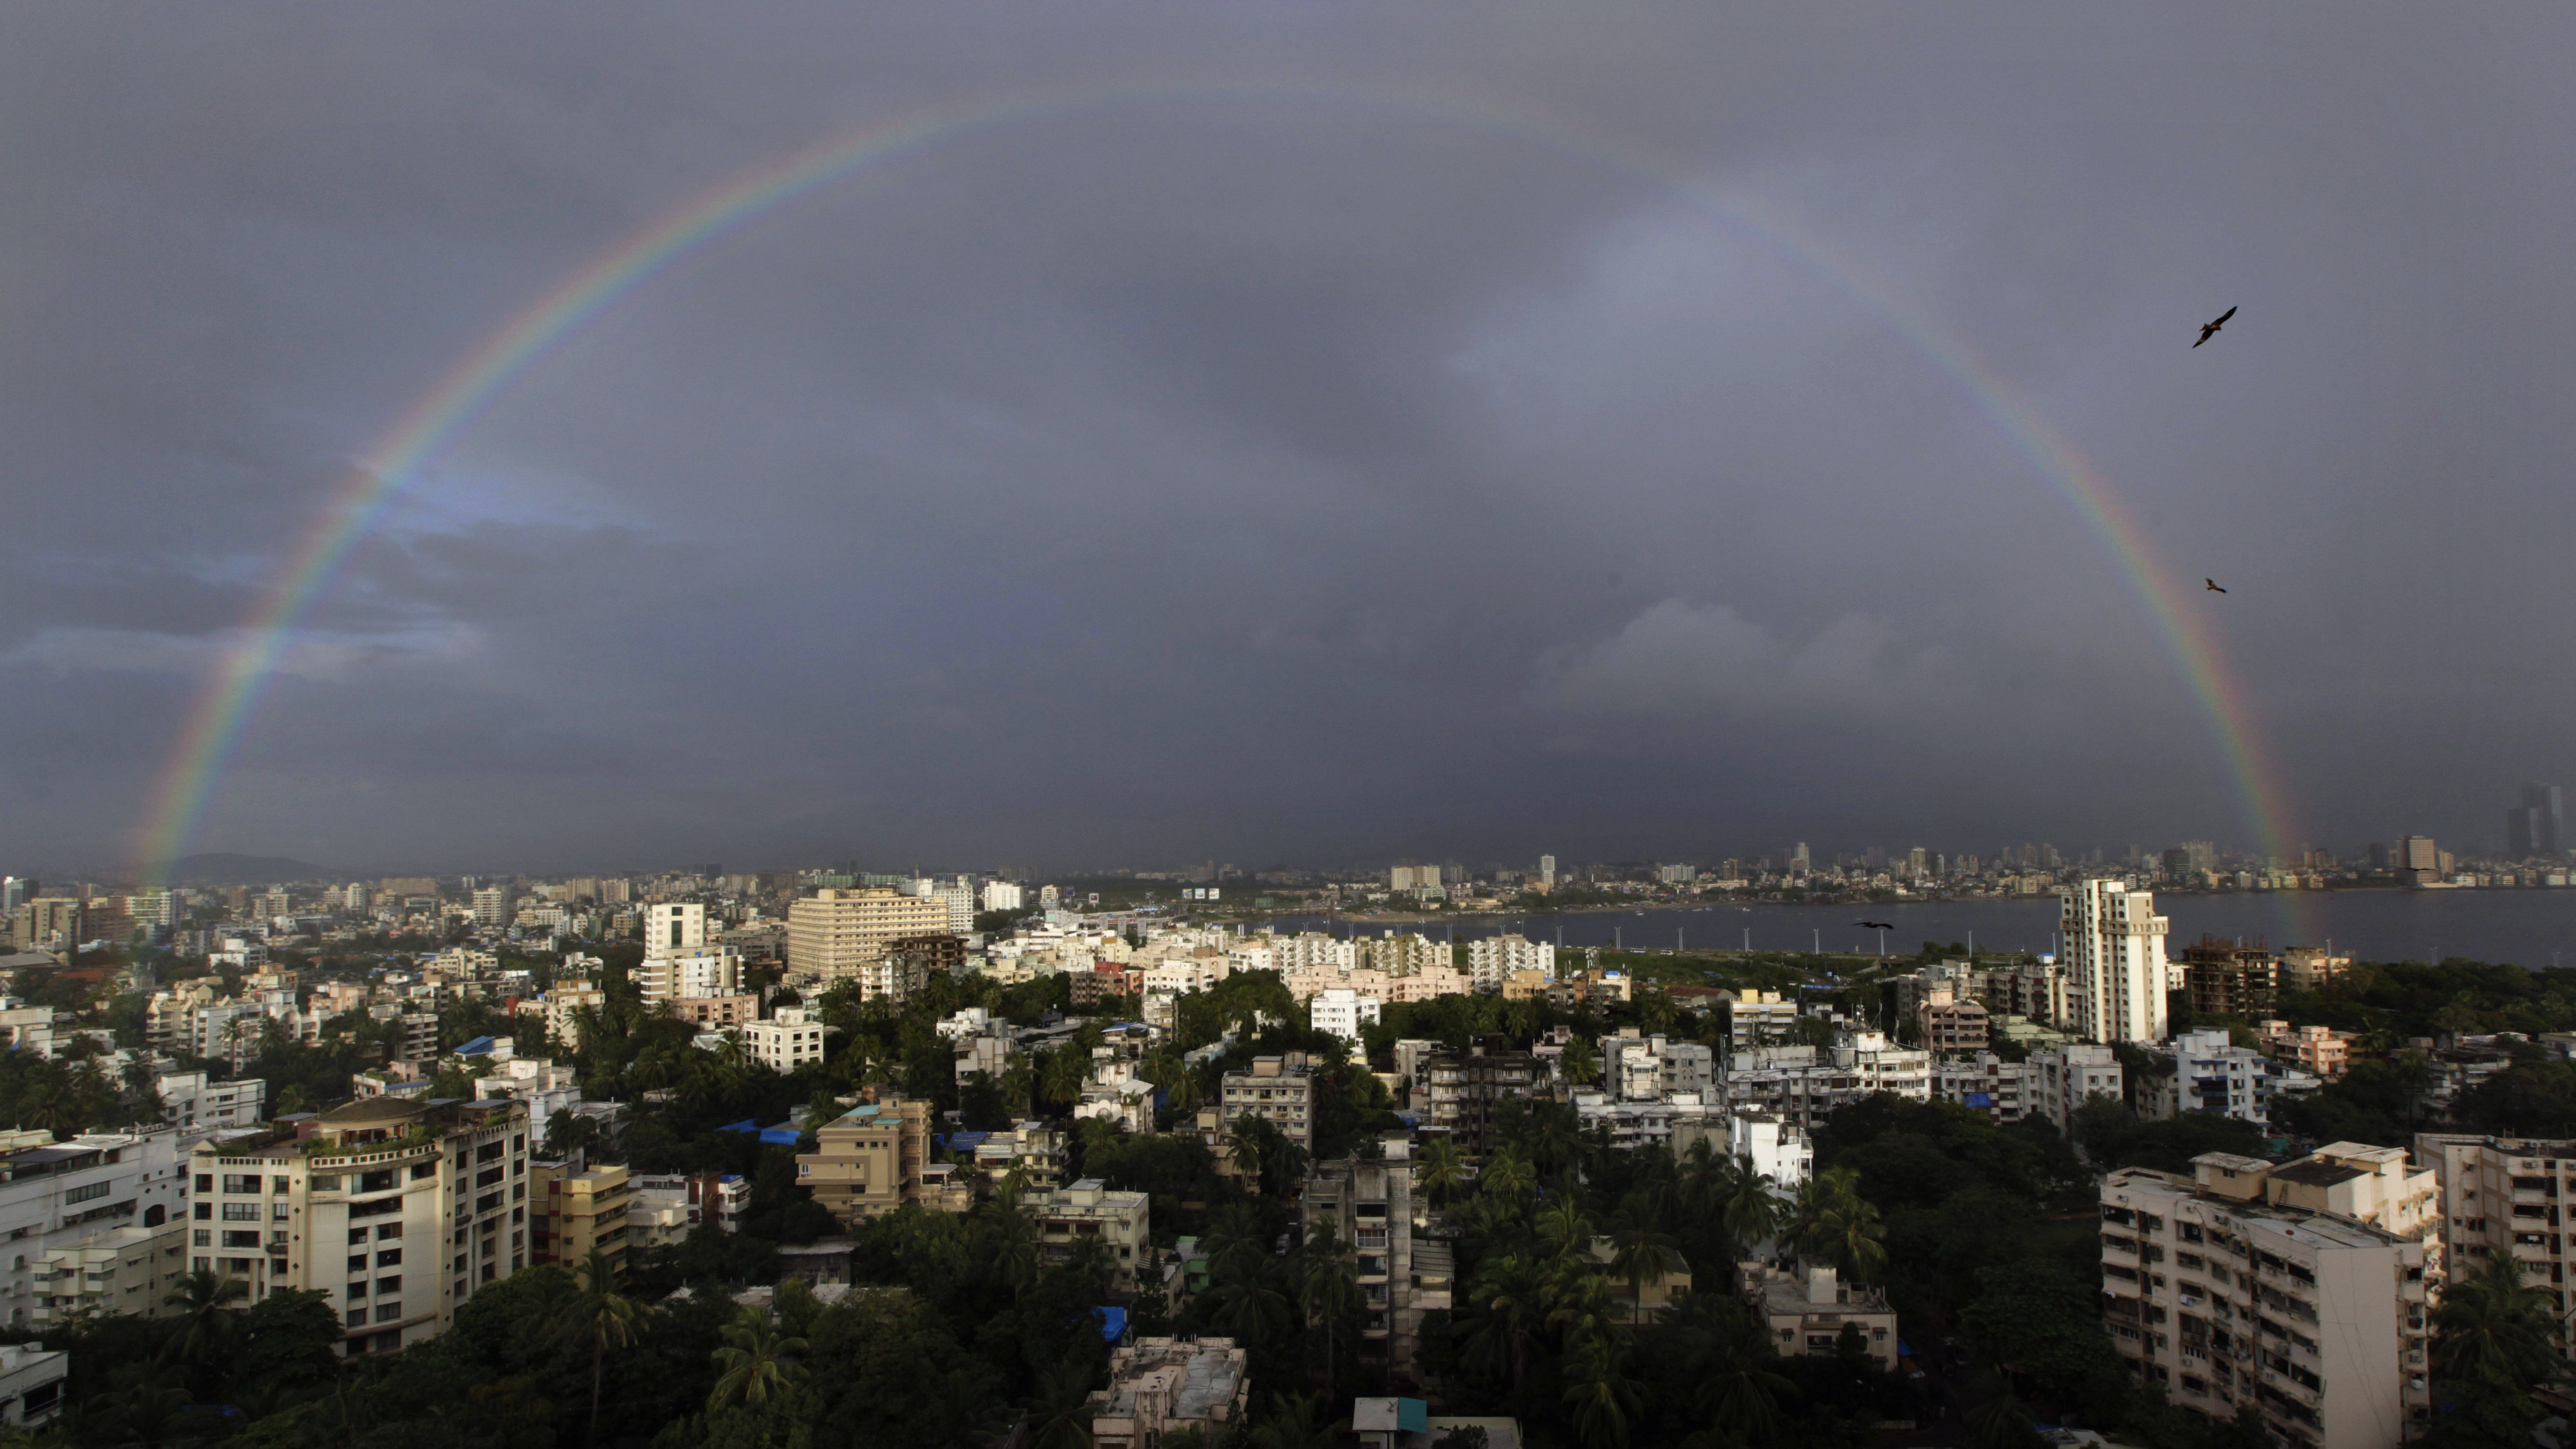 A rainbow is seen over the skyline after two days of heavy rainfall in Mumbai India, Friday, Sept. 7, 2012. (AP Photo/ Manish Swarup)